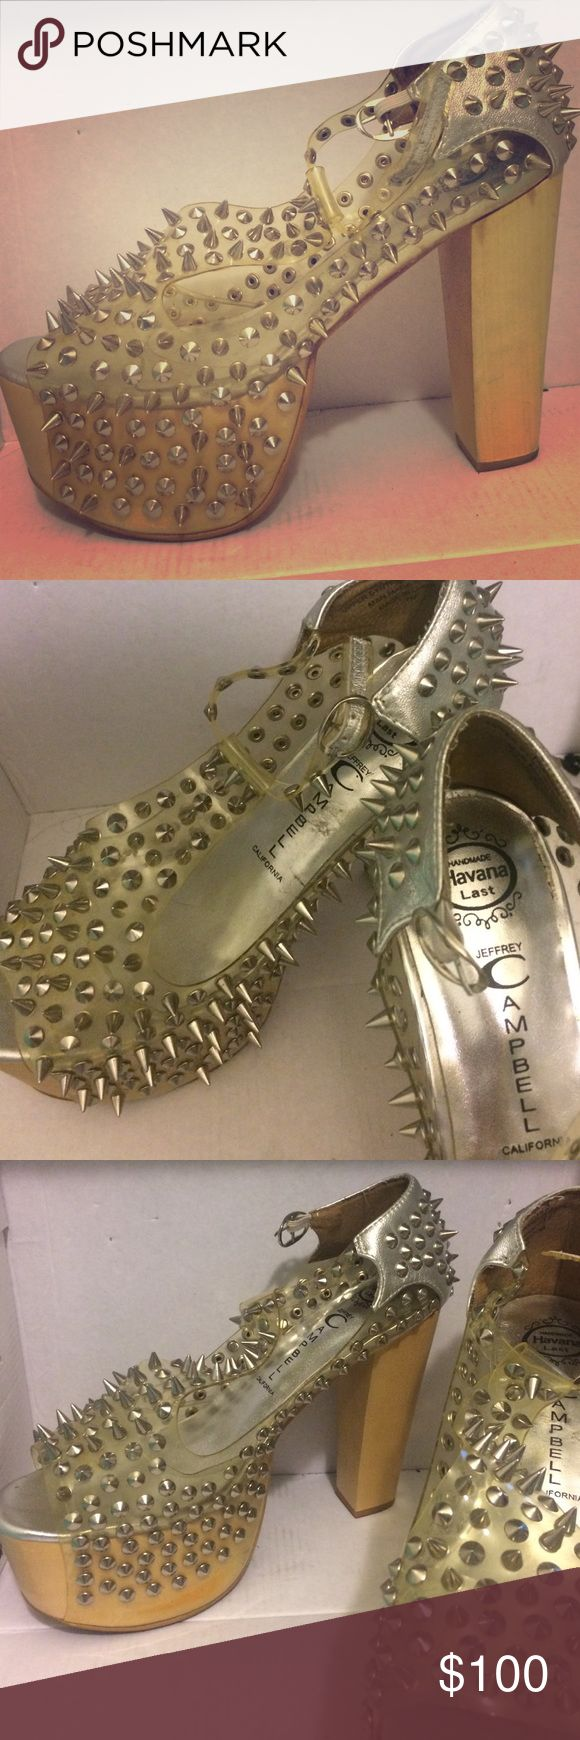 Jeffrey Campbell spiked heels Silver metal spikes, wood platform heels, upper synthetic leather Jeffrey Campbell Shoes Platforms